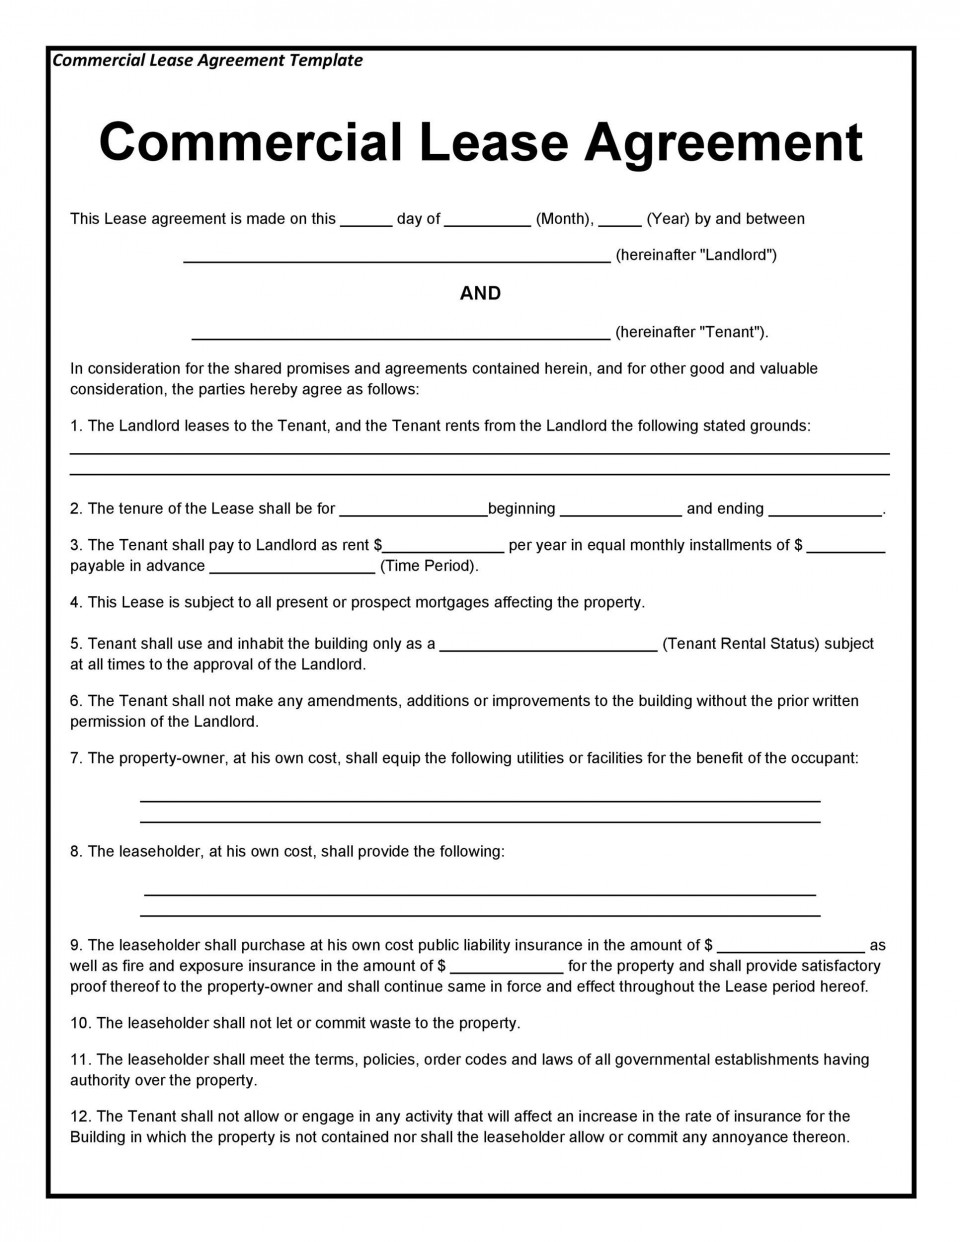 002 Shocking Free Lease Agreement Template Word Picture  Commercial Residential Rental South Africa960